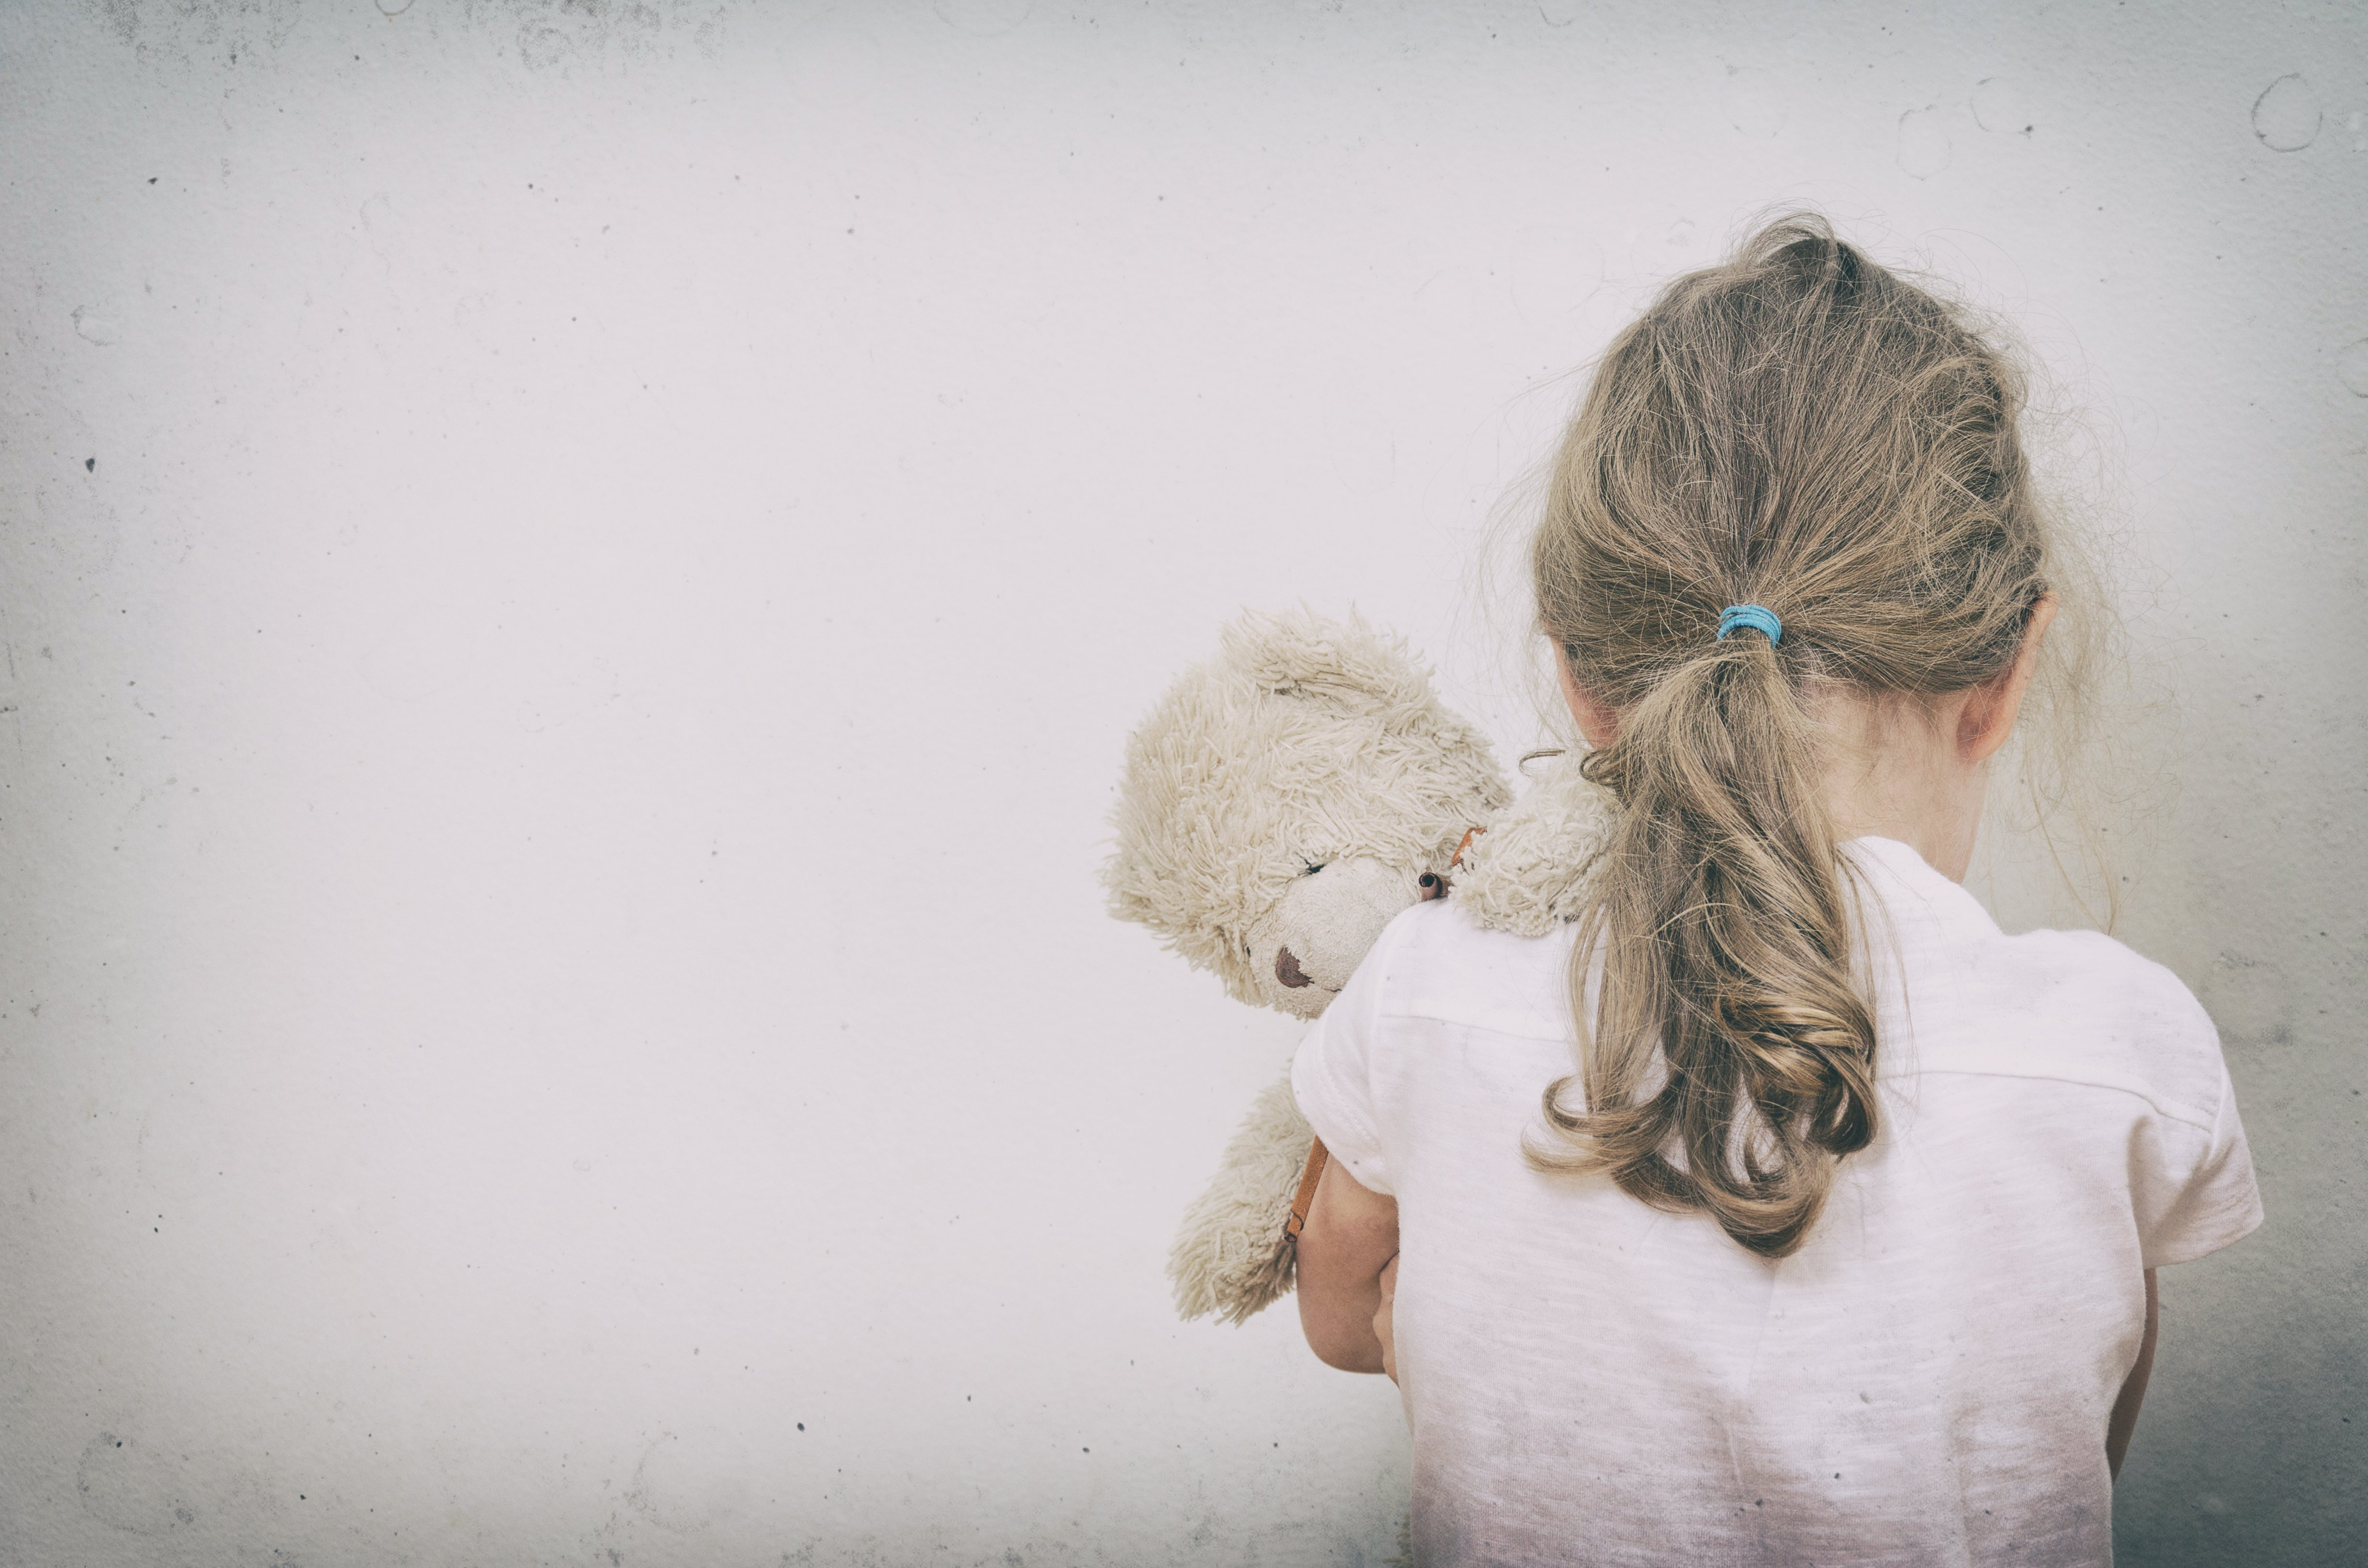 A sad little girl from the back holding her teddy bear.   Source: Shutterstock